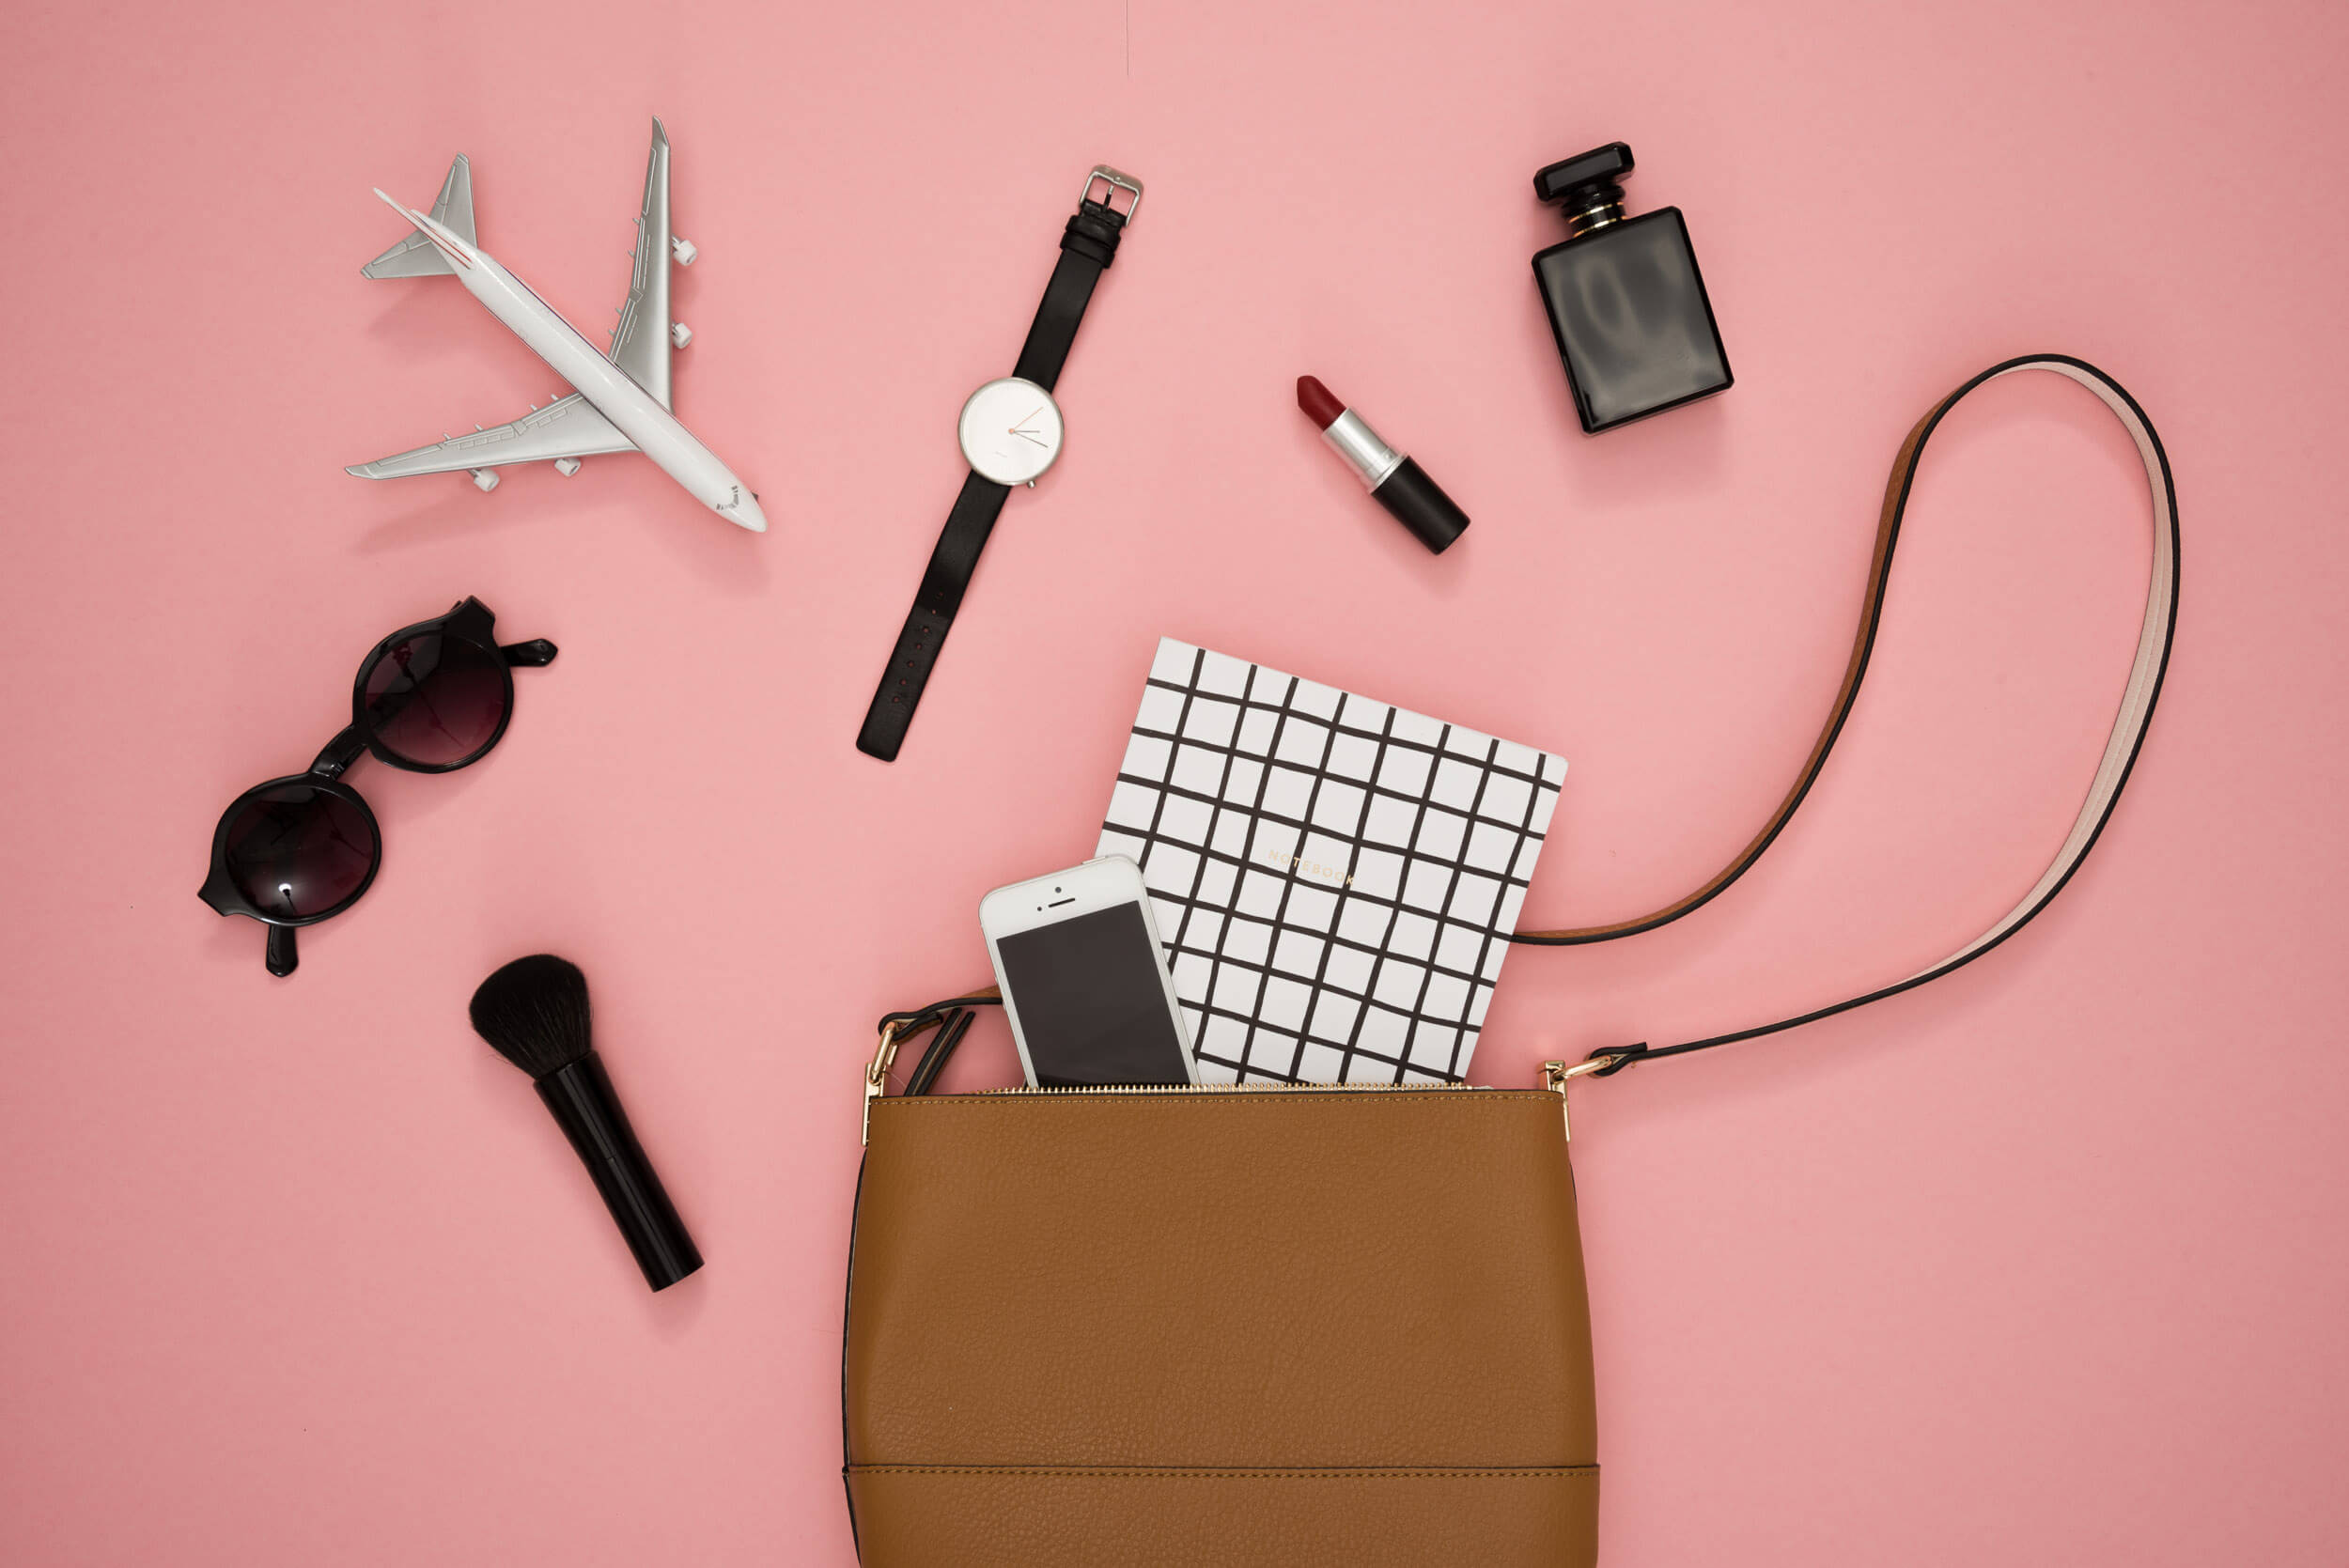 ckanani-female-bag-and-accessories-on-a-pink-background.jpg